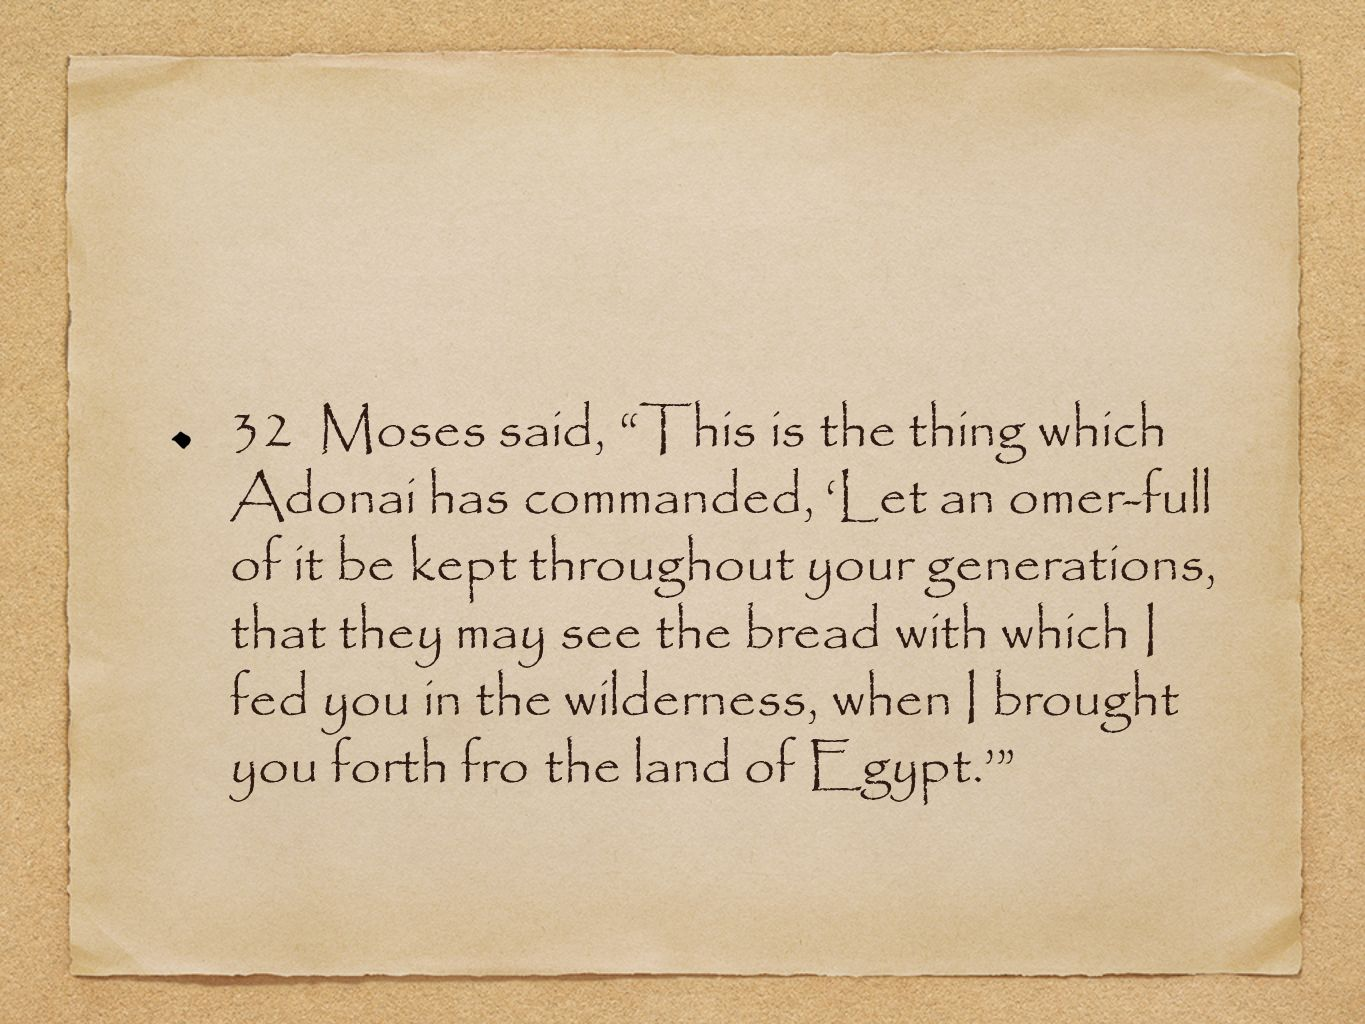 32 Moses said, This is the thing which Adonai has commanded, 'Let an omer-full of it be kept throughout your generations, that they may see the bread with which I fed you in the wilderness, when I brought you forth fro the land of Egypt.'